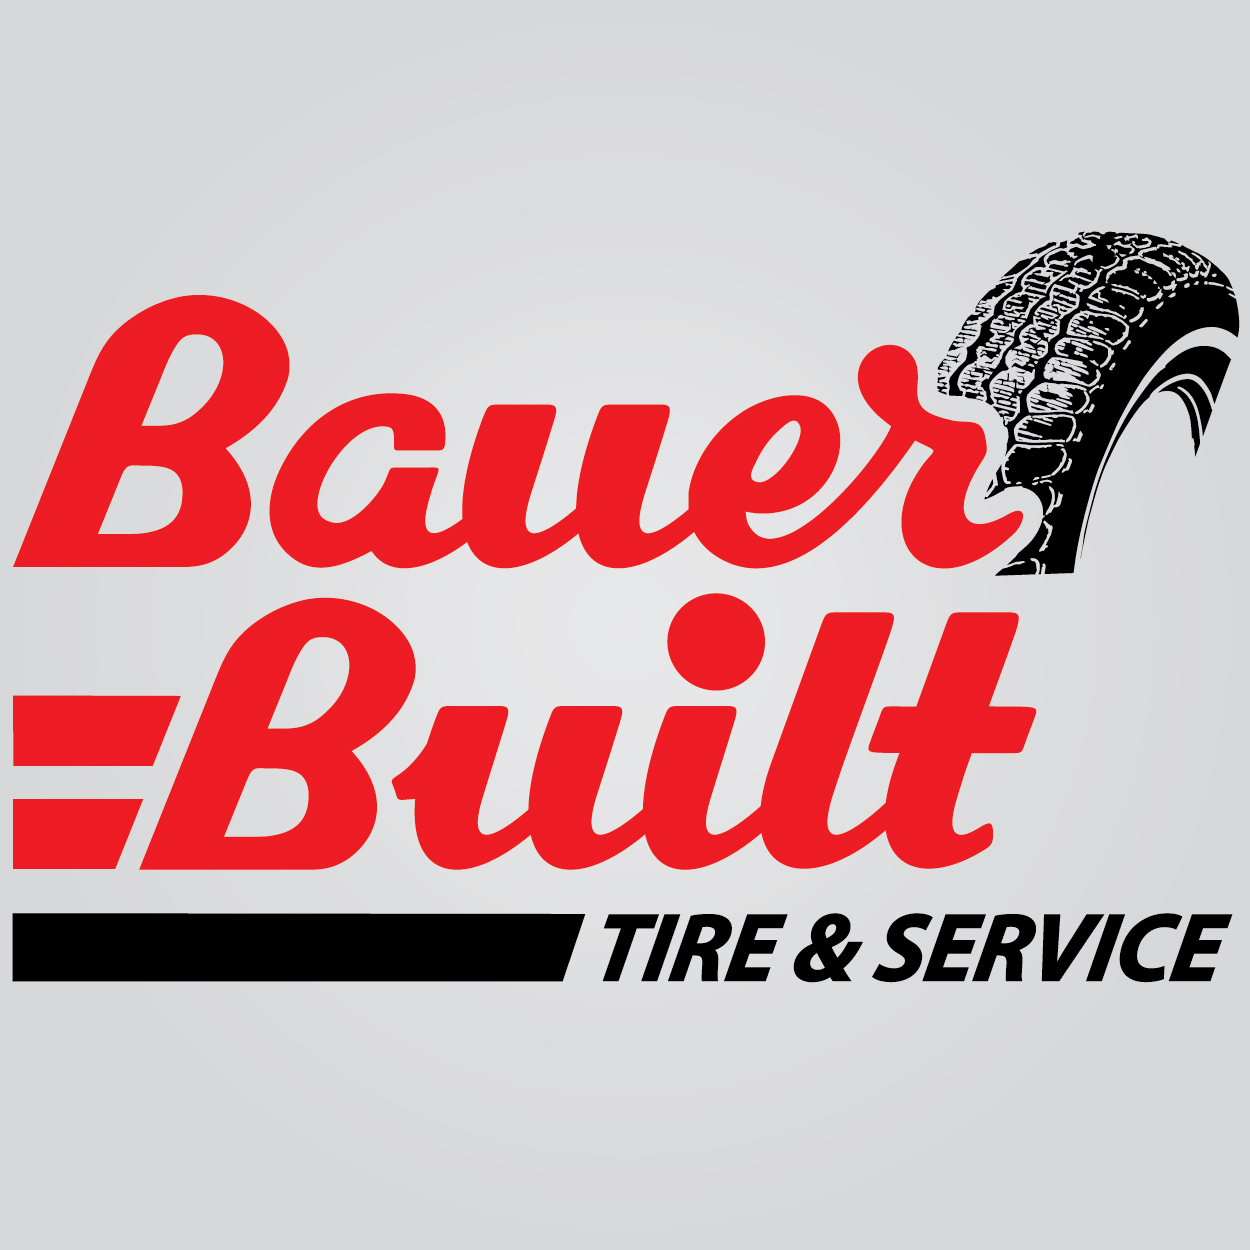 Bauer Built Tire & Service in Romeoville, IL. Custom tire retreading for passenger, light & commercial truck, agricultural, industrial, off-the-road & fleet vehicles, including rim & wheel reconditioning & distributor of new commercial truck tires, including services.